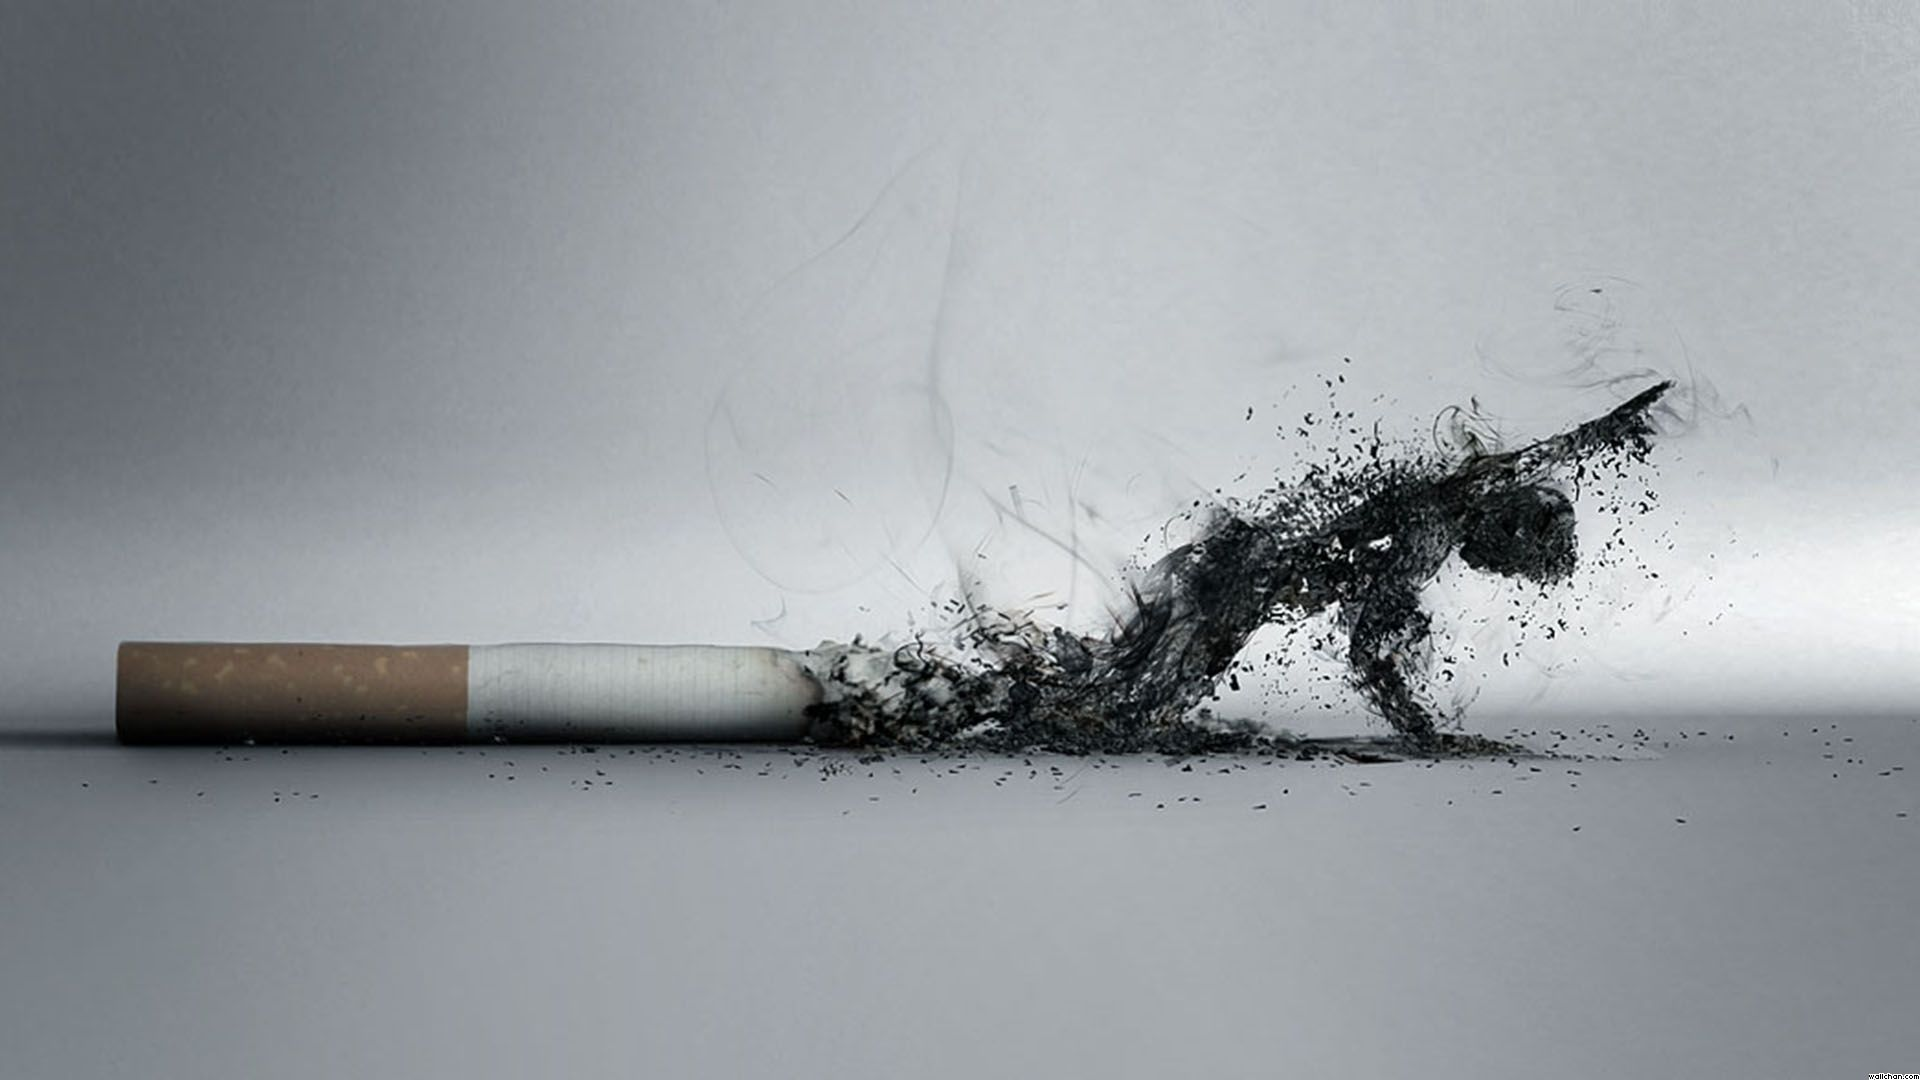 Smoking cigarettes has been linked to developing gray hair before the age of 30.